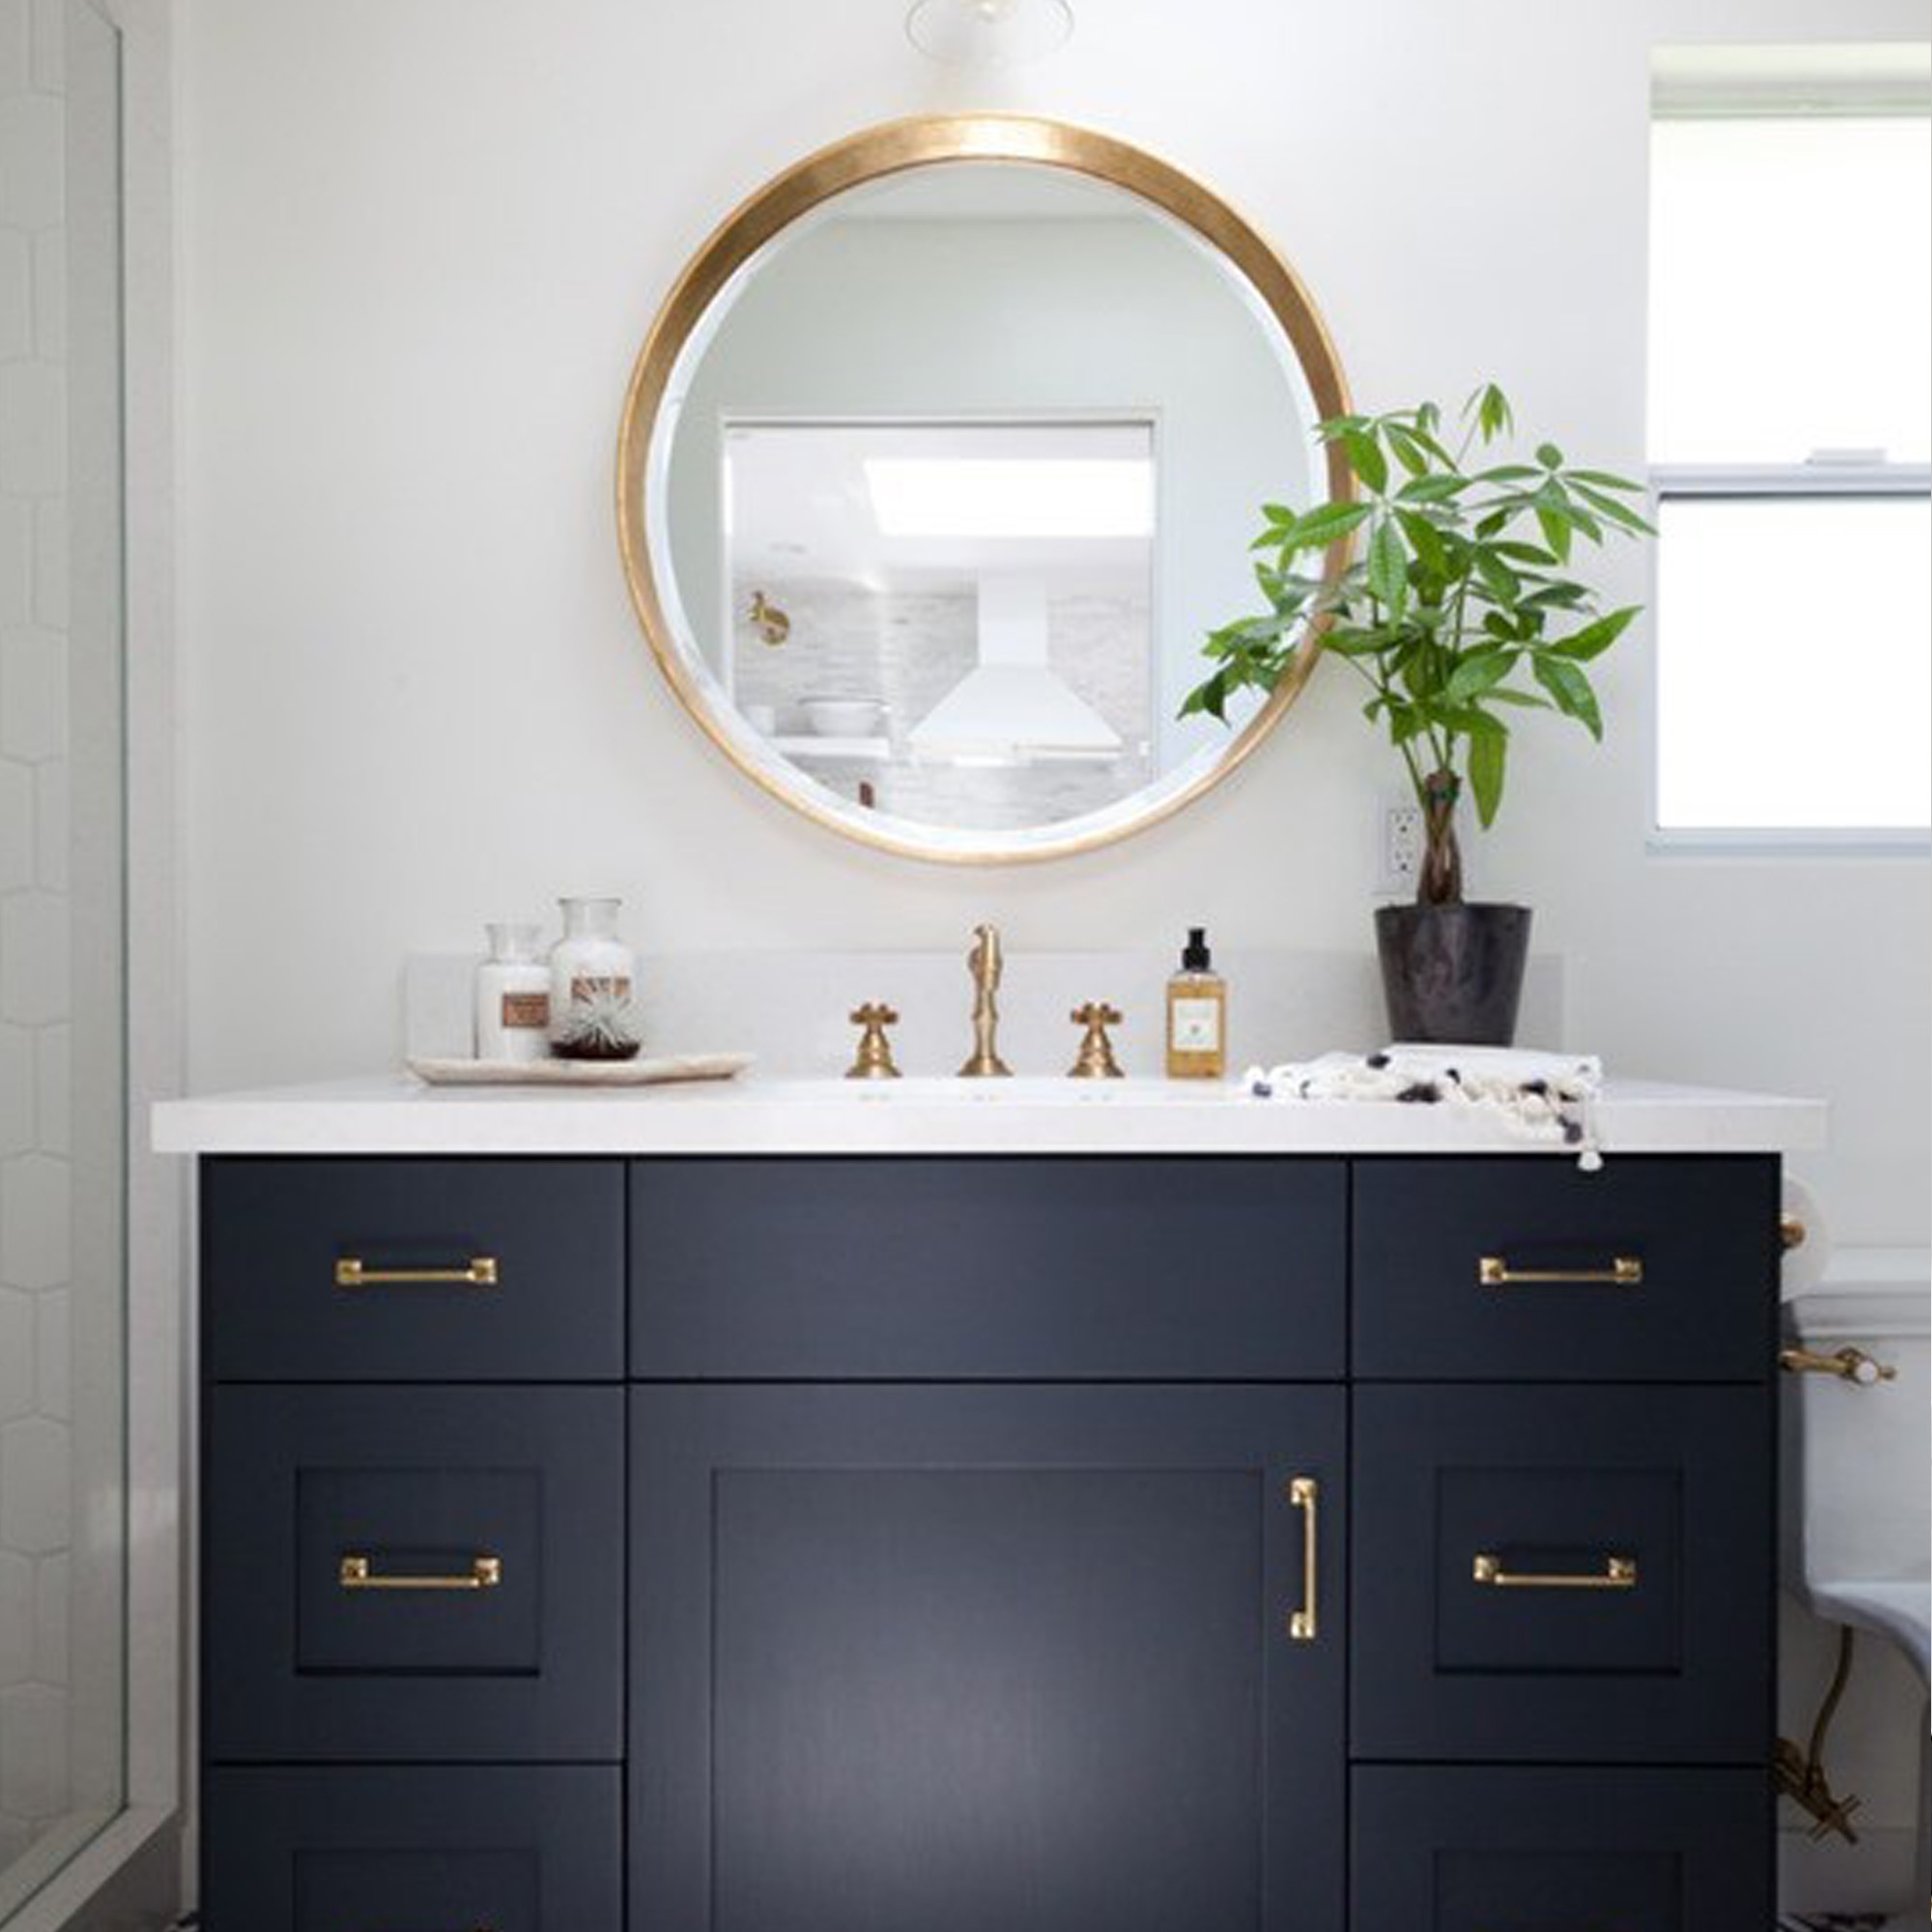 Cabinet Ideas For Kitchens How High To Place Your Bathroom Fixtures Inspired To Style